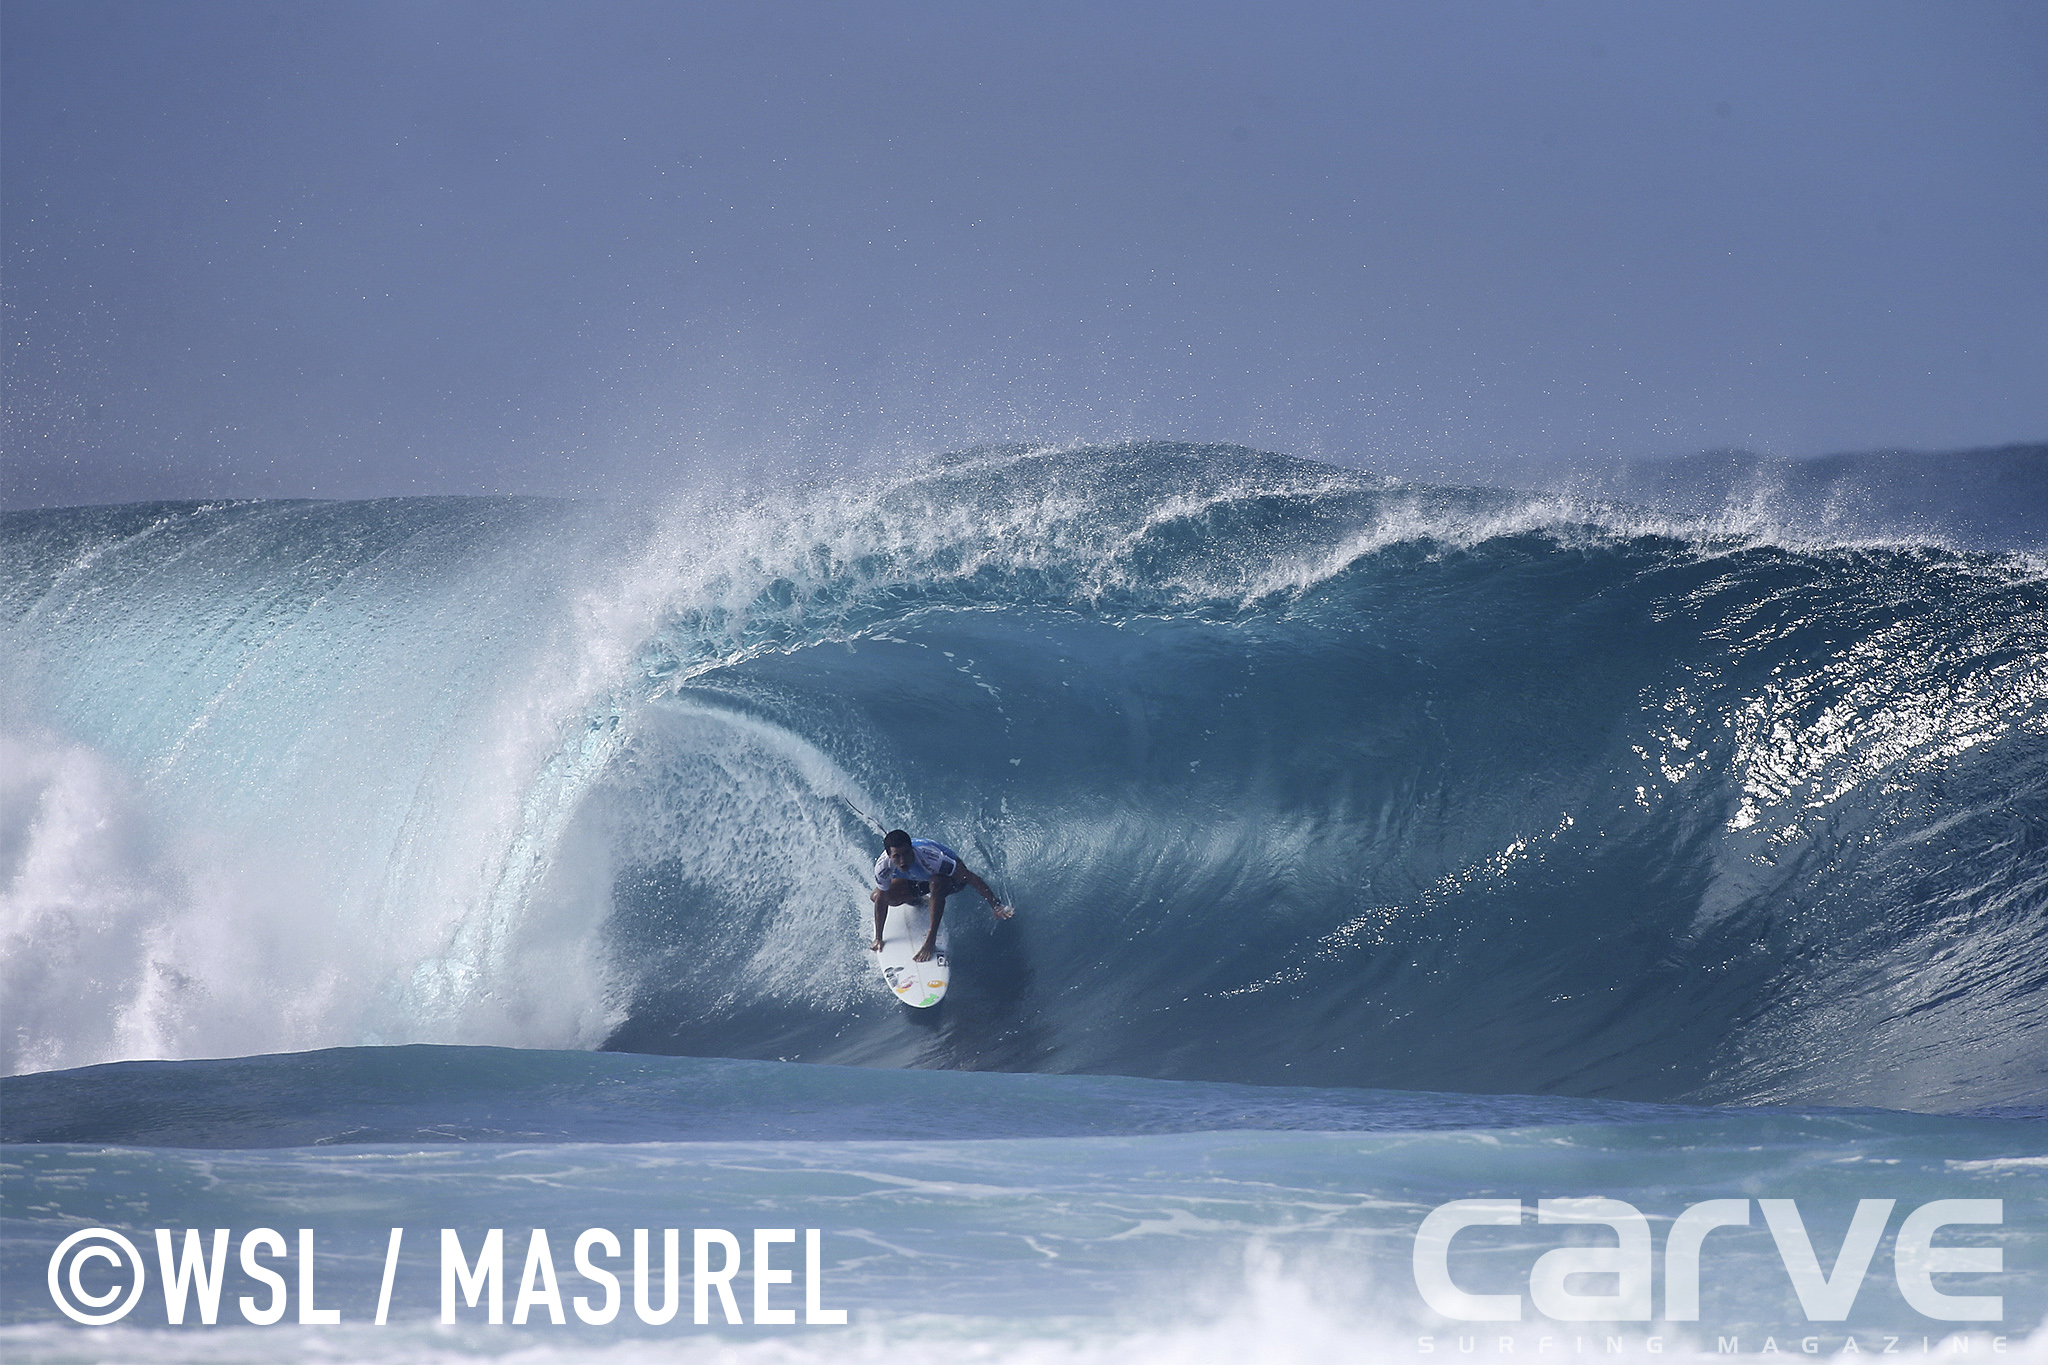 "IMAGE CAPTION (Wednesday December 16, 2015): Adriano de Souza of Brasil (pictured) winning his Round 3 heat at the Billabong Pipe Masters. IMAGE CREDIT: WSL / Masurel PHOTOGRAPHER: Laurent Masurel SOCIAL MEDIA TAG: @wsl The images attached or accessed by link within this email (""Images"") are hand-out images from the Association of Surfing Professionals LLC (""World Surf League""). All Images are royalty-free but for editorial use only. No commercial or other rights are granted to the Images in any way. The Images are provided on an ""as is"" basis and no warranty is provided for use of a particular purpose. Rights to an individual within an Image are not provided. Copyright to the Images is owned by World Surf League. Sale or license of the Images is prohibited. ALL RIGHTS RESERVED."